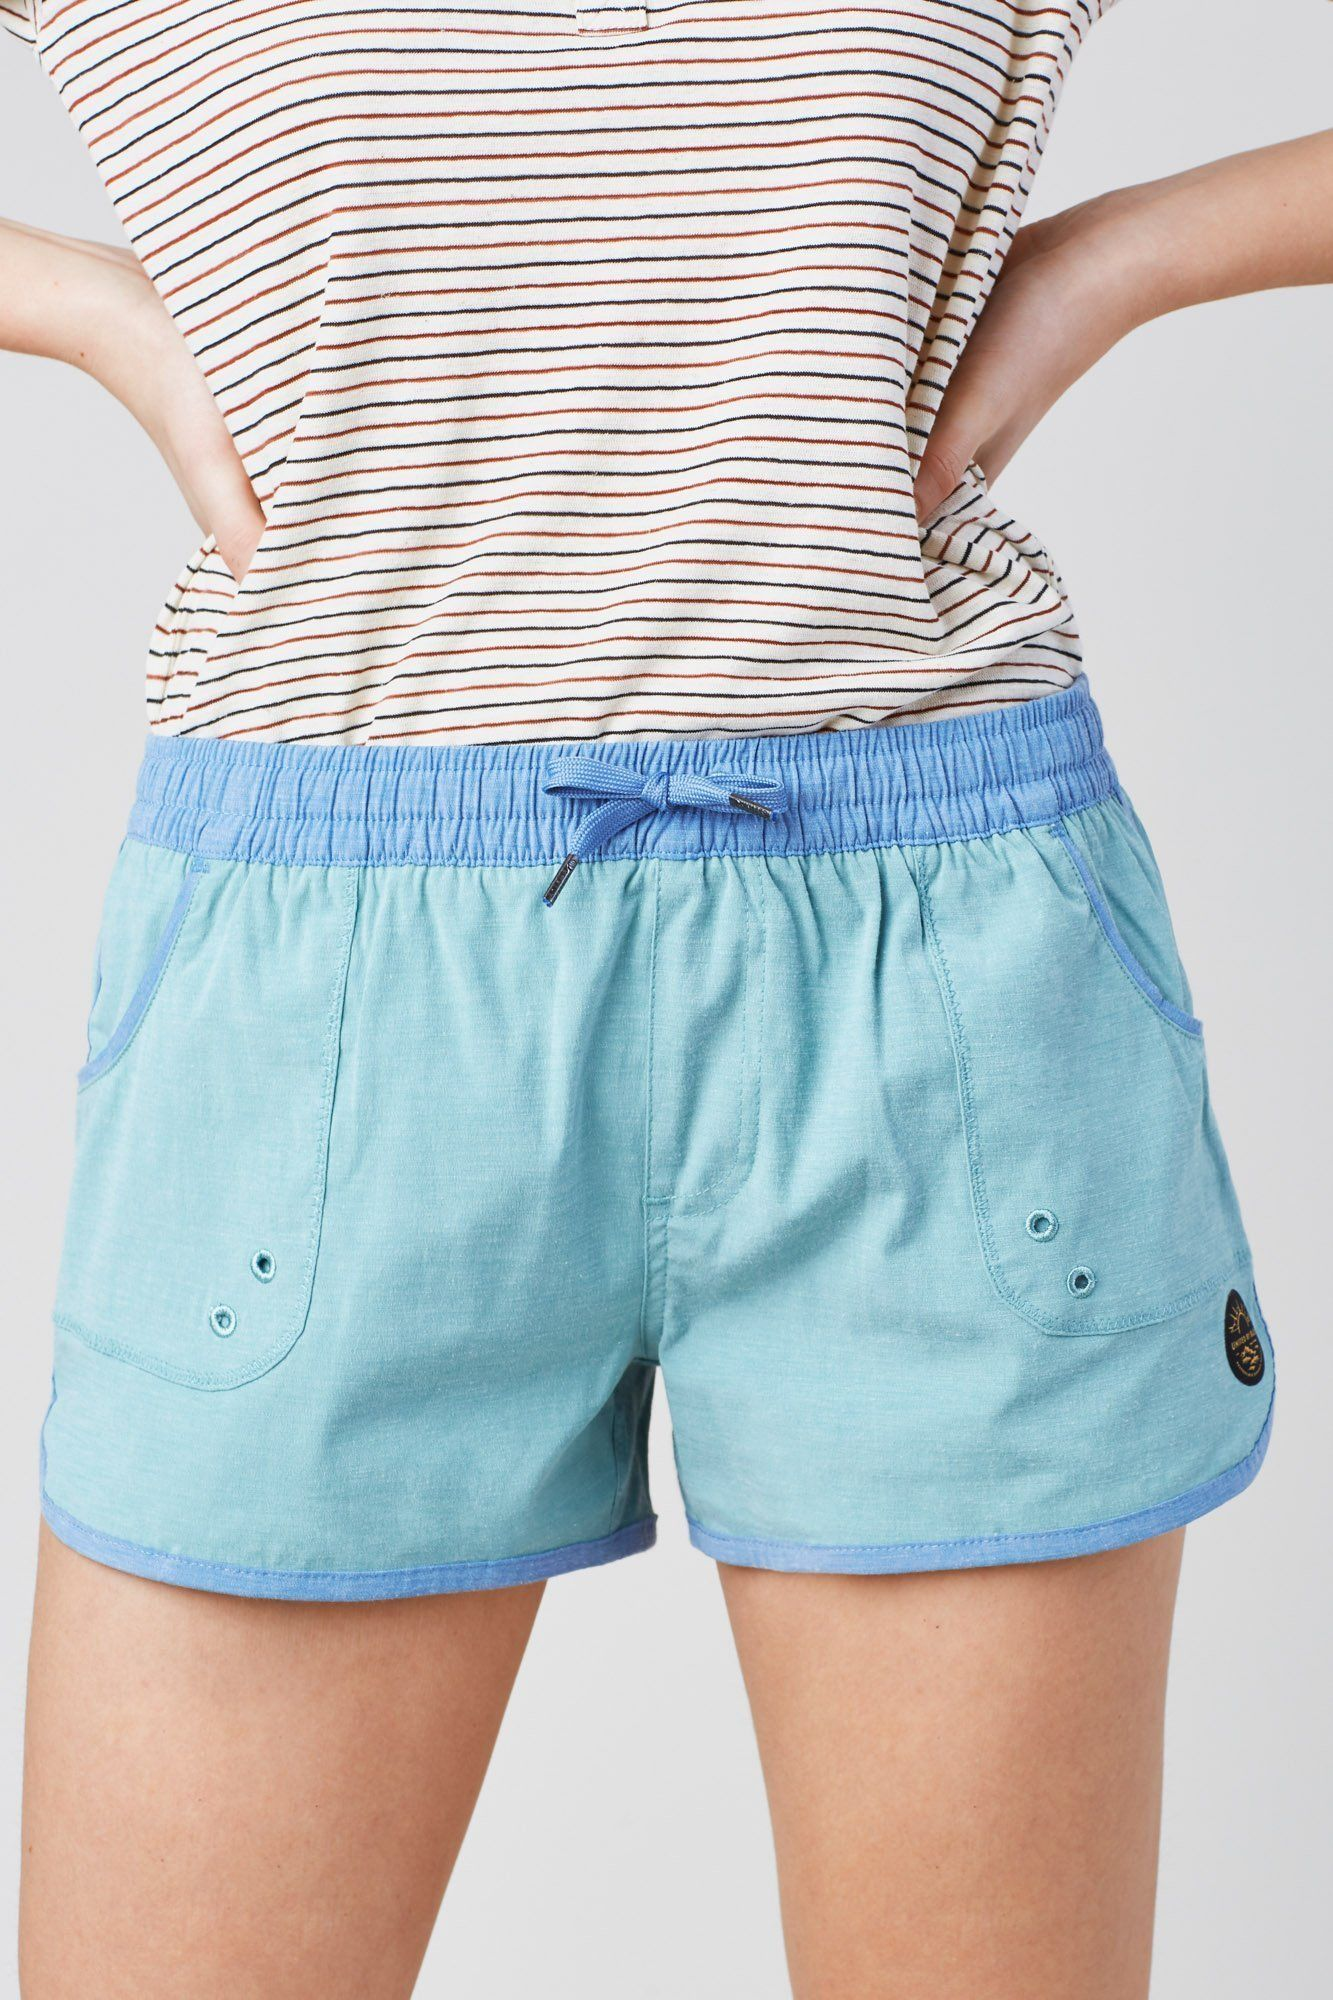 United By Blue - Women's Classic Board Short-SEA GREEN - Weekendbee - sustainable sportswear